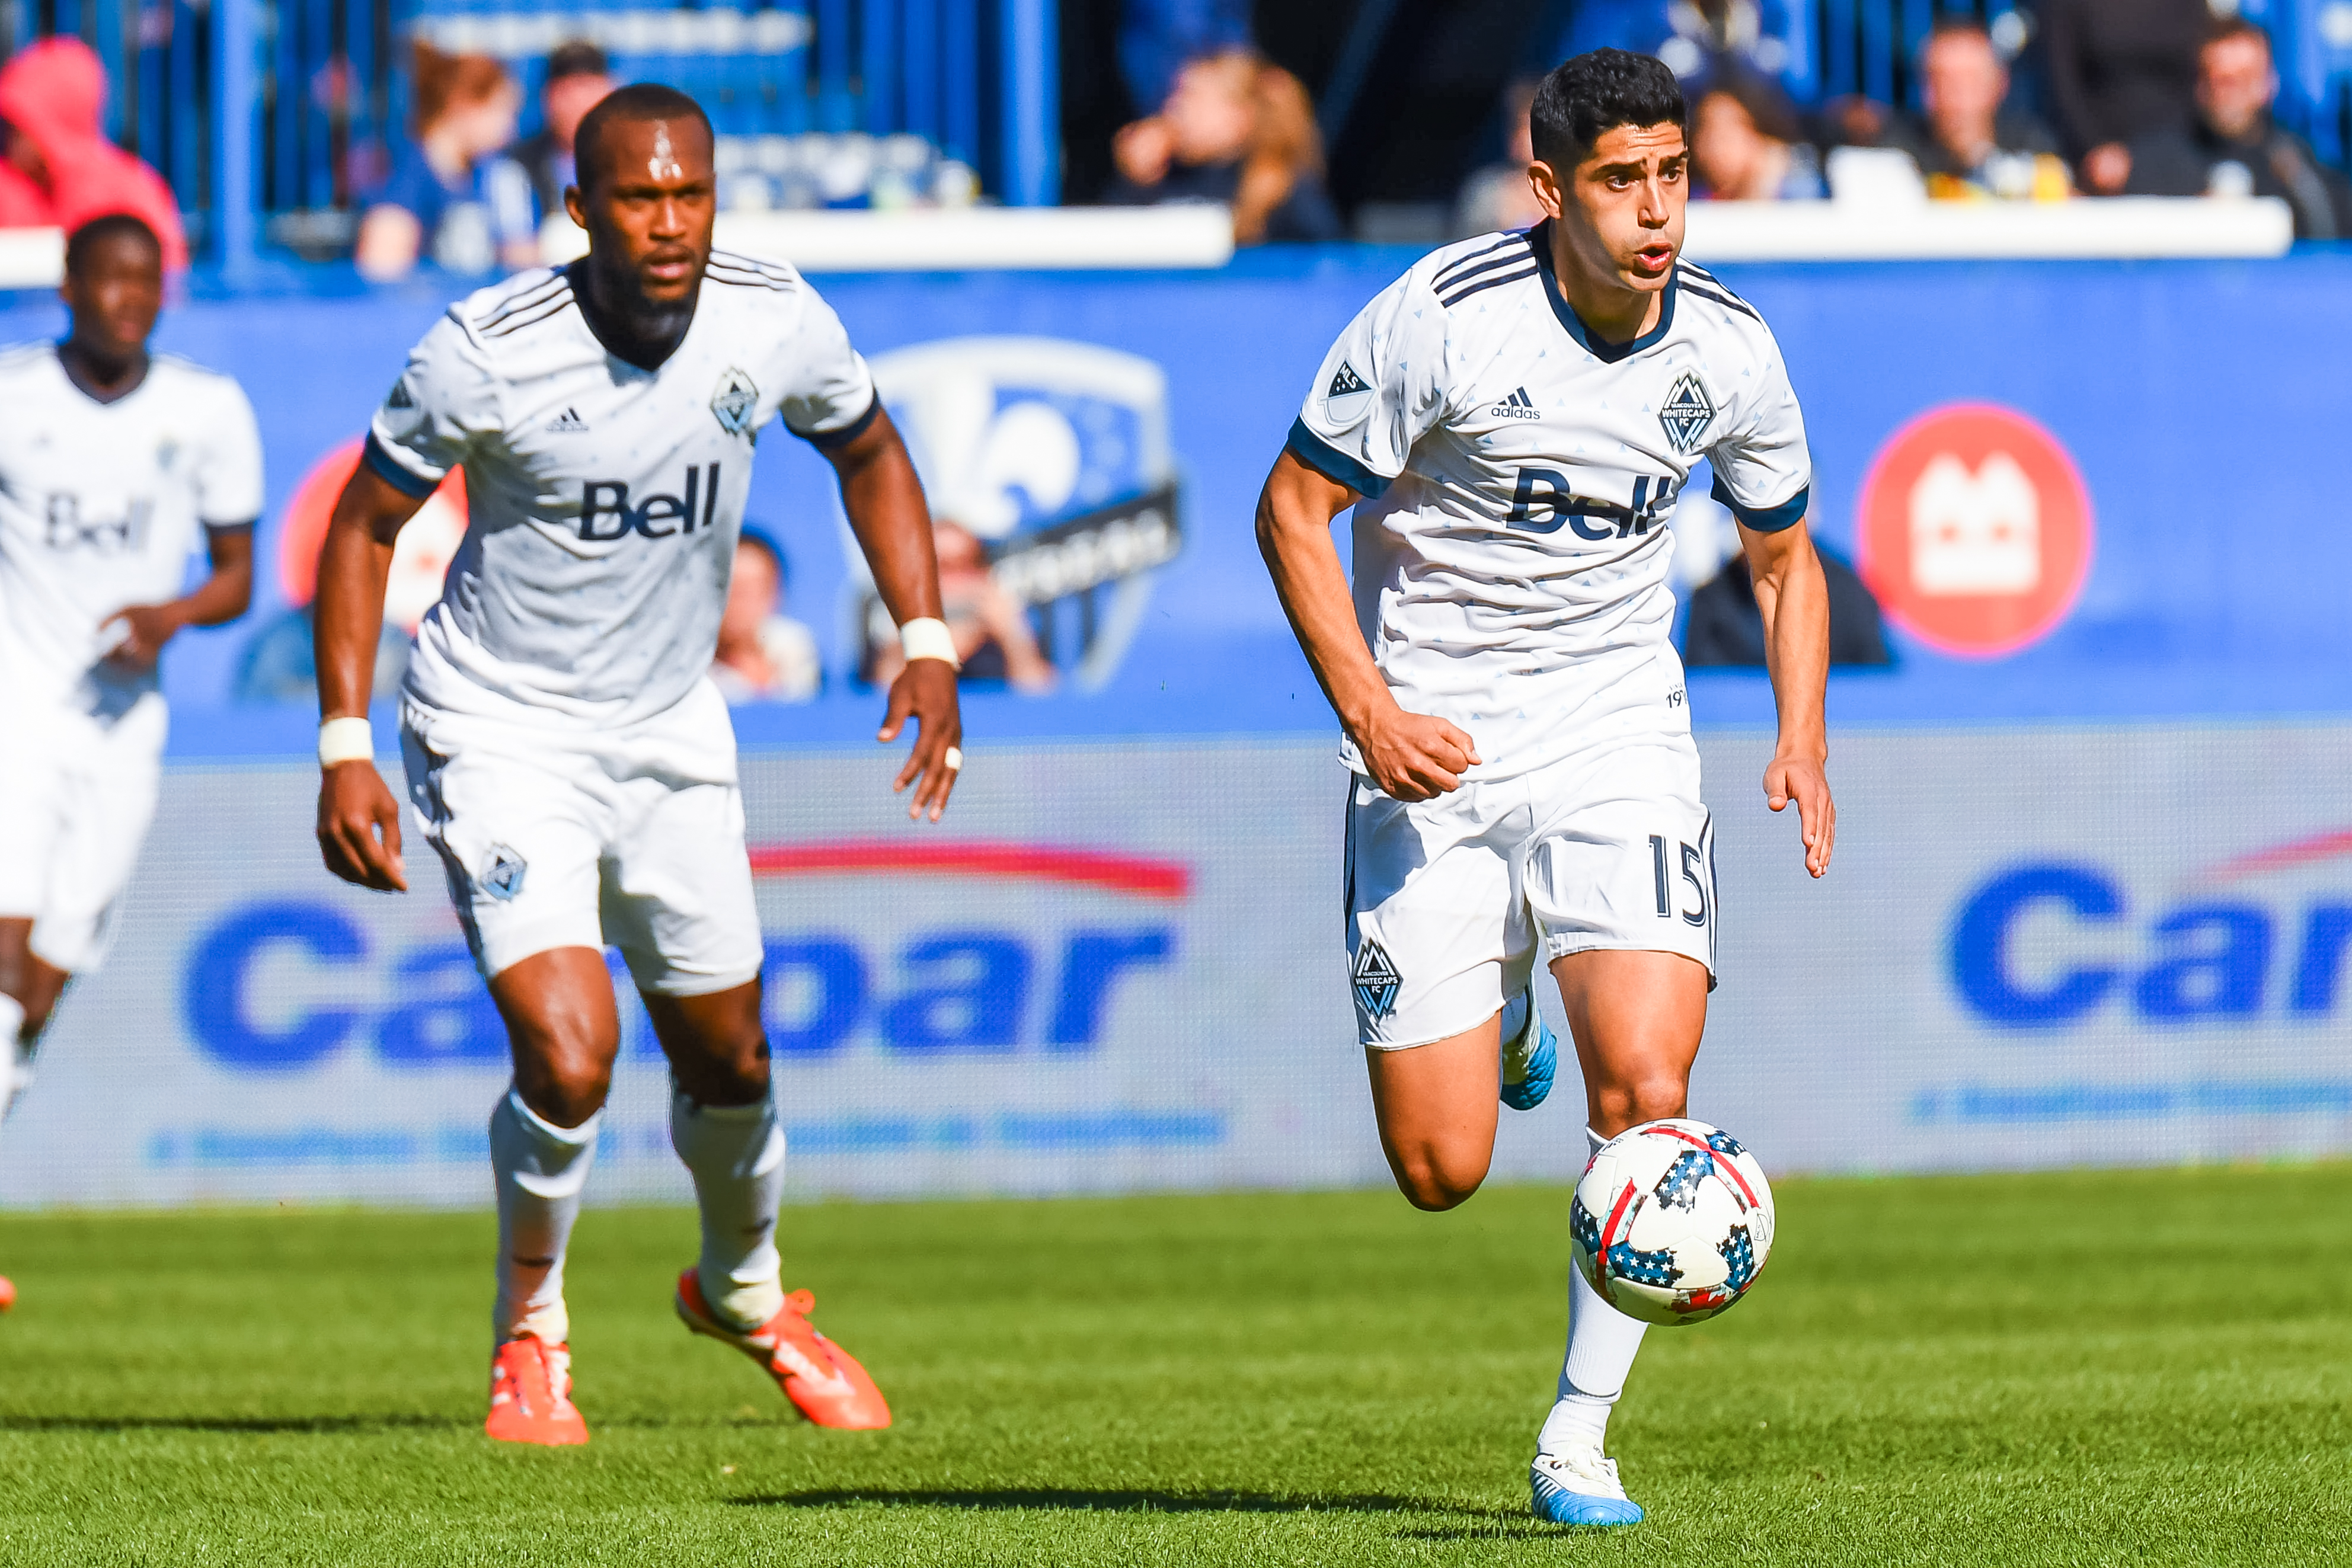 SOCCER: APR 29 MLS - Vancouver Whitecaps FC at Montreal Impact